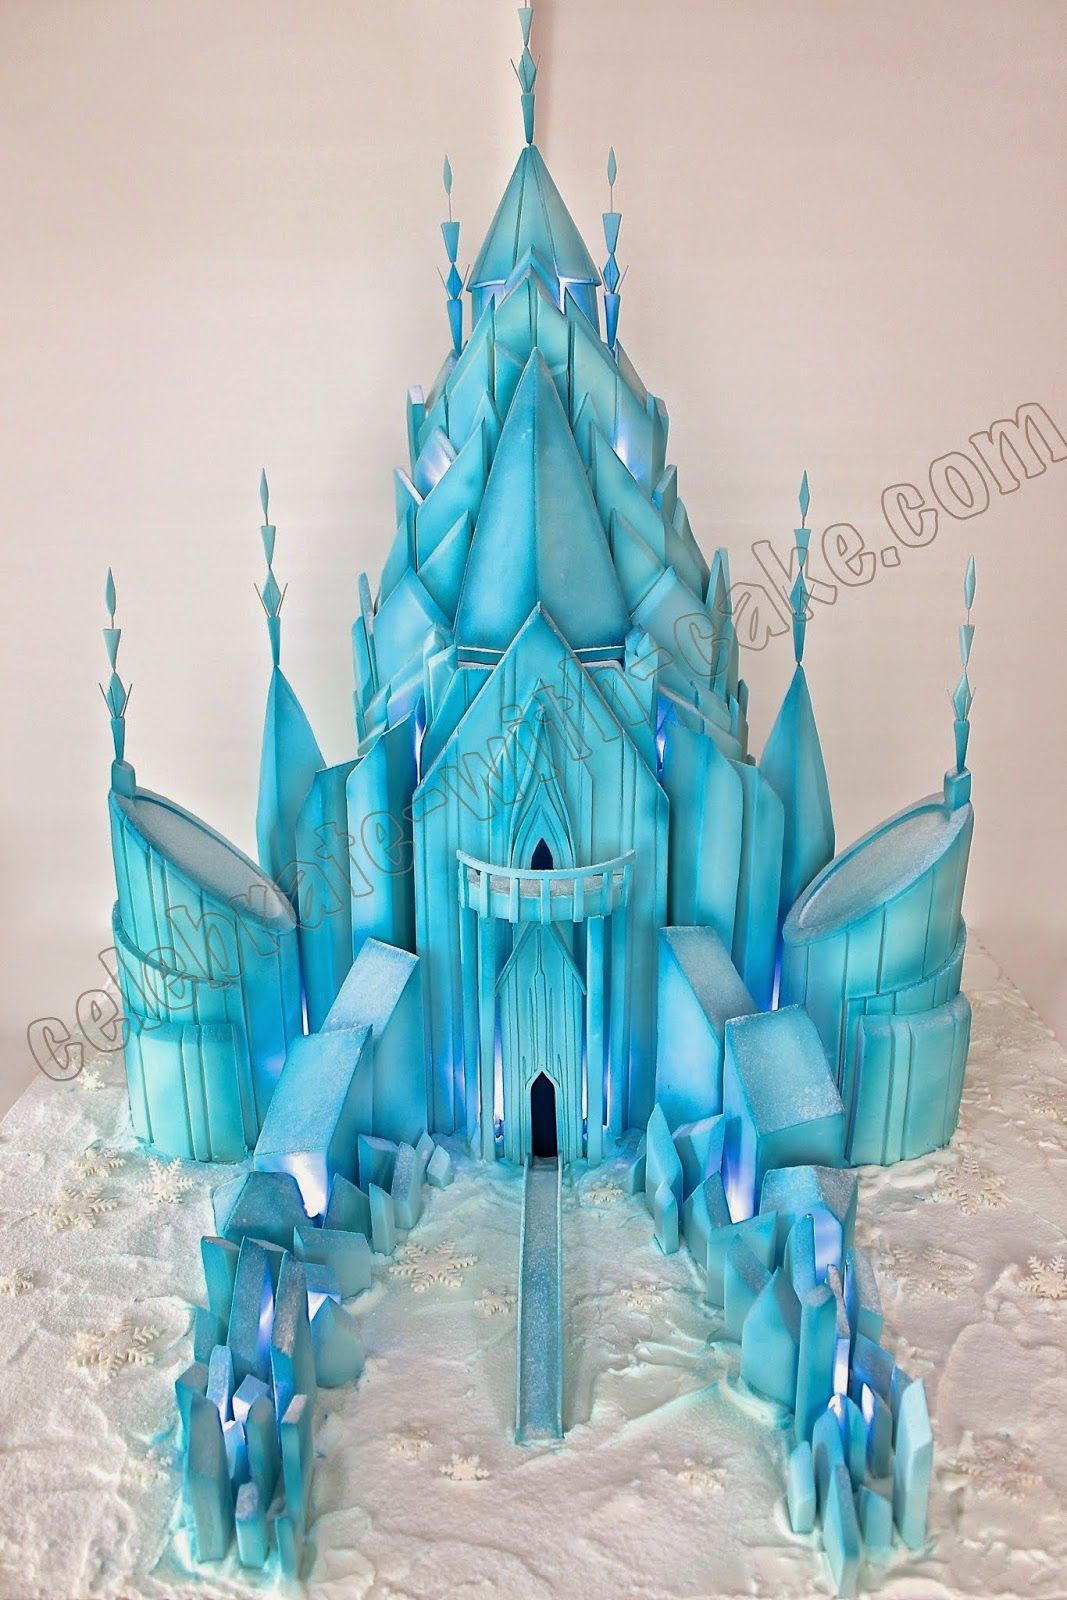 g teau ch teau g ant celebrate with cake giant icicle